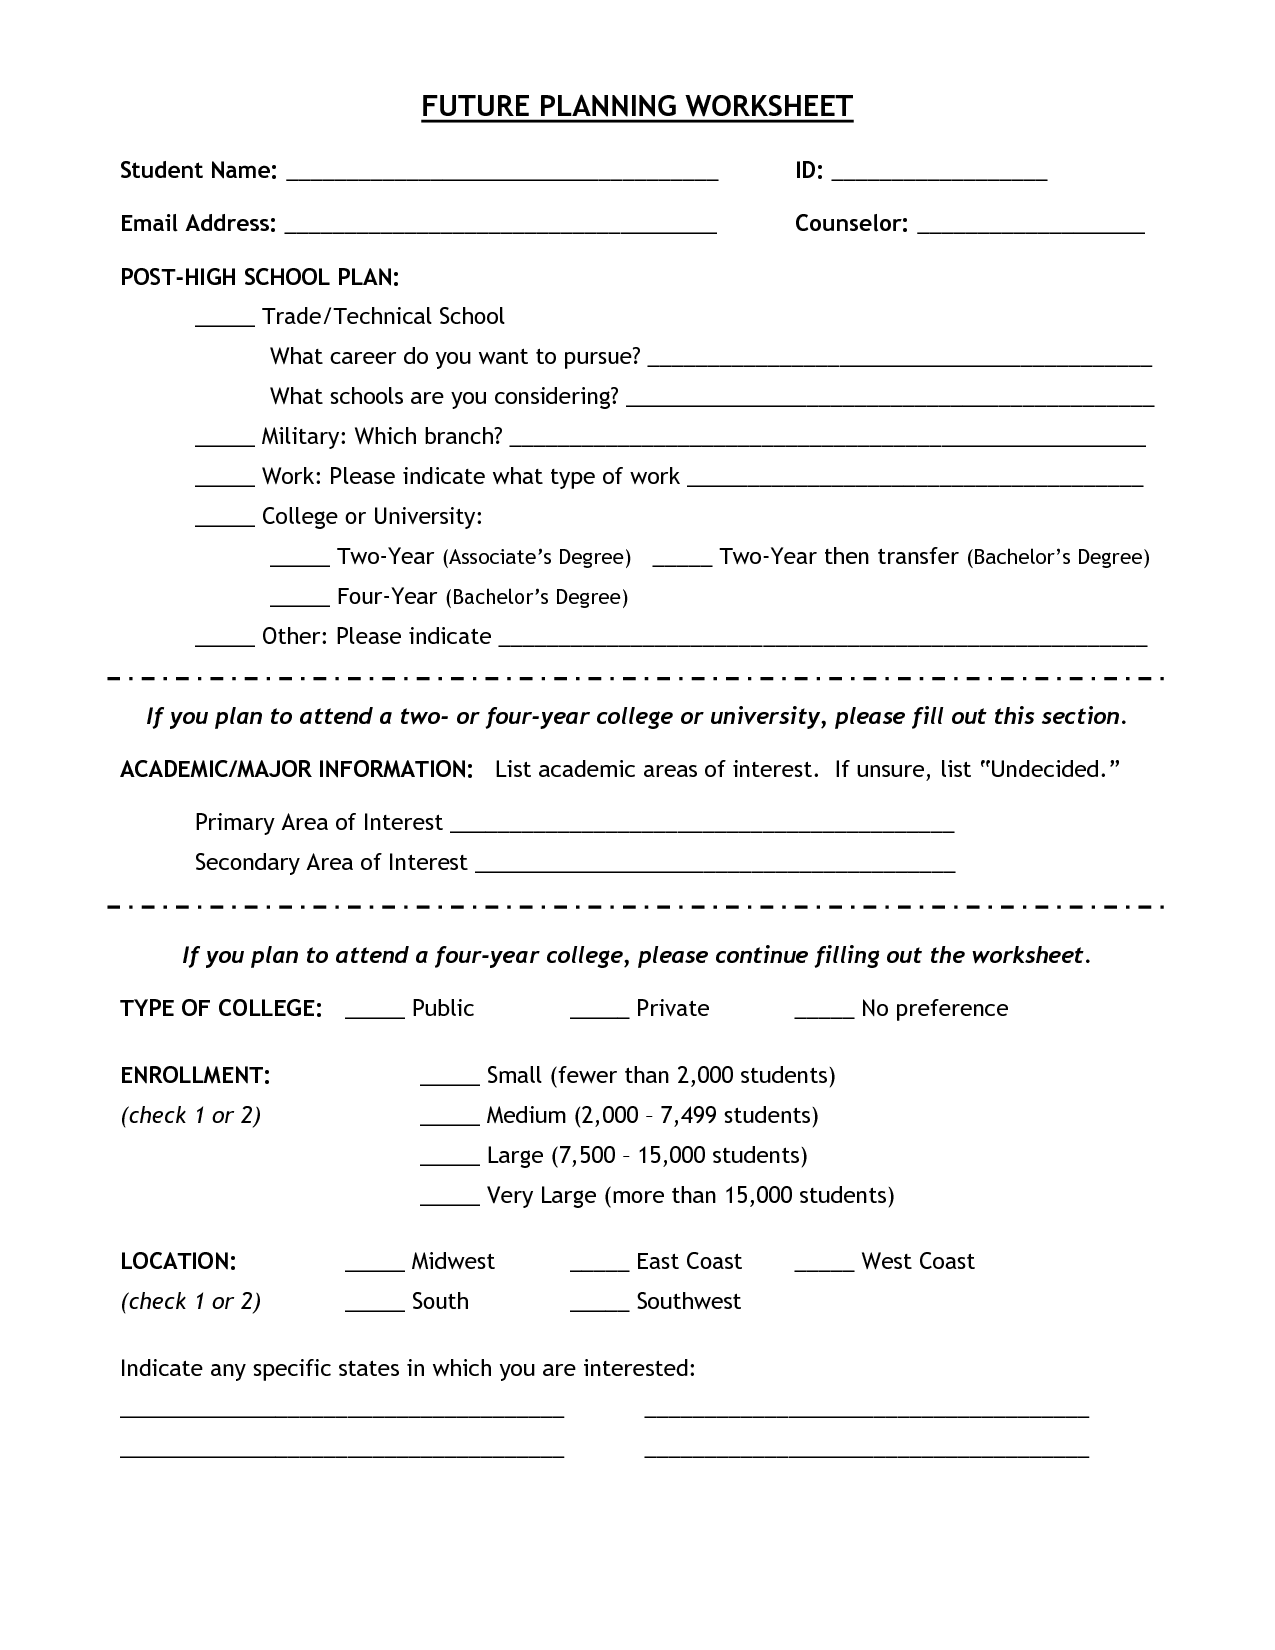 High School Career Planning Worksheet Future Plans